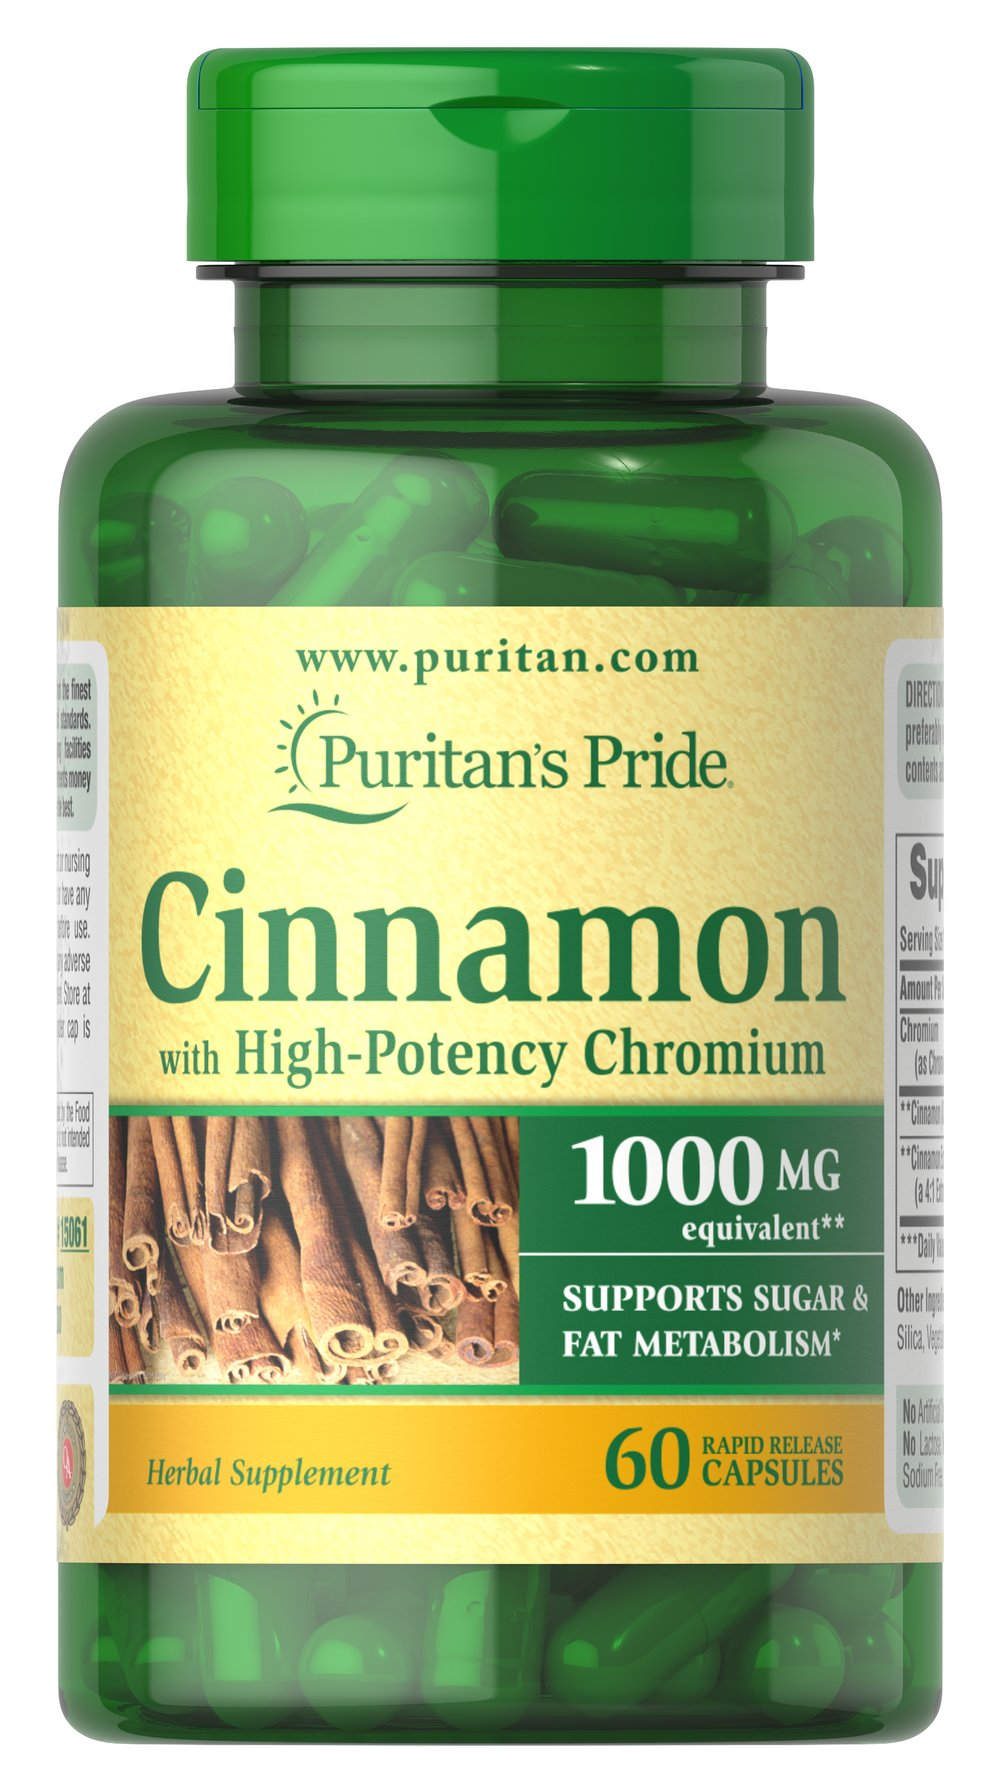 Cinnamon Complex with High Potency Chromium  60 Capsules 1000 mg $15.65